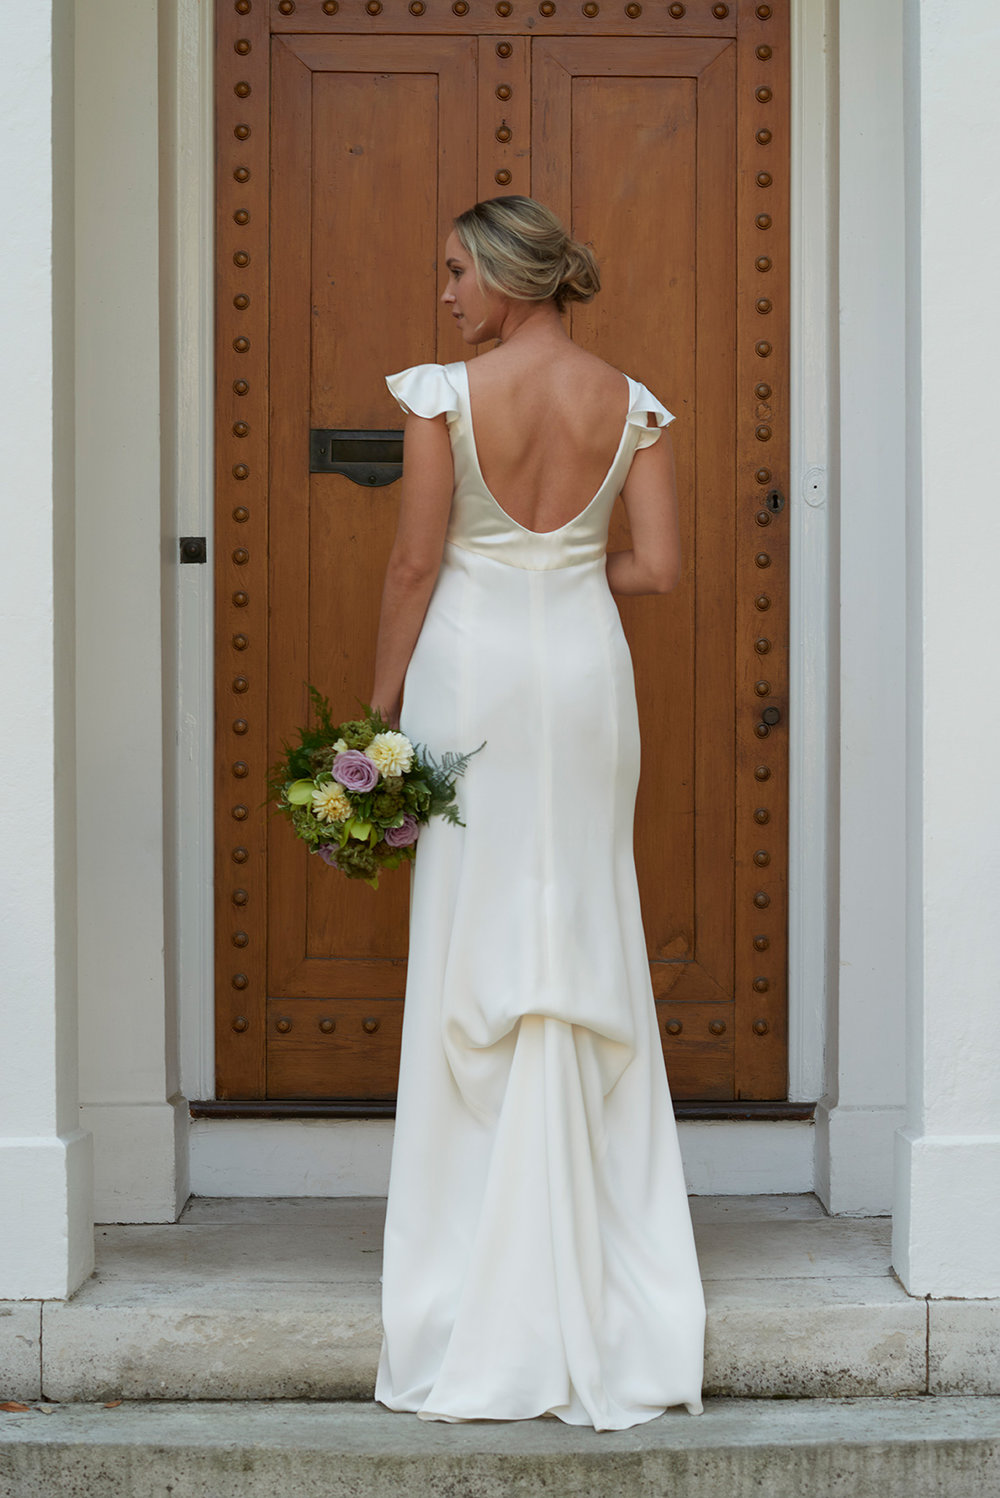 Willa_dress_doorback-web.jpg